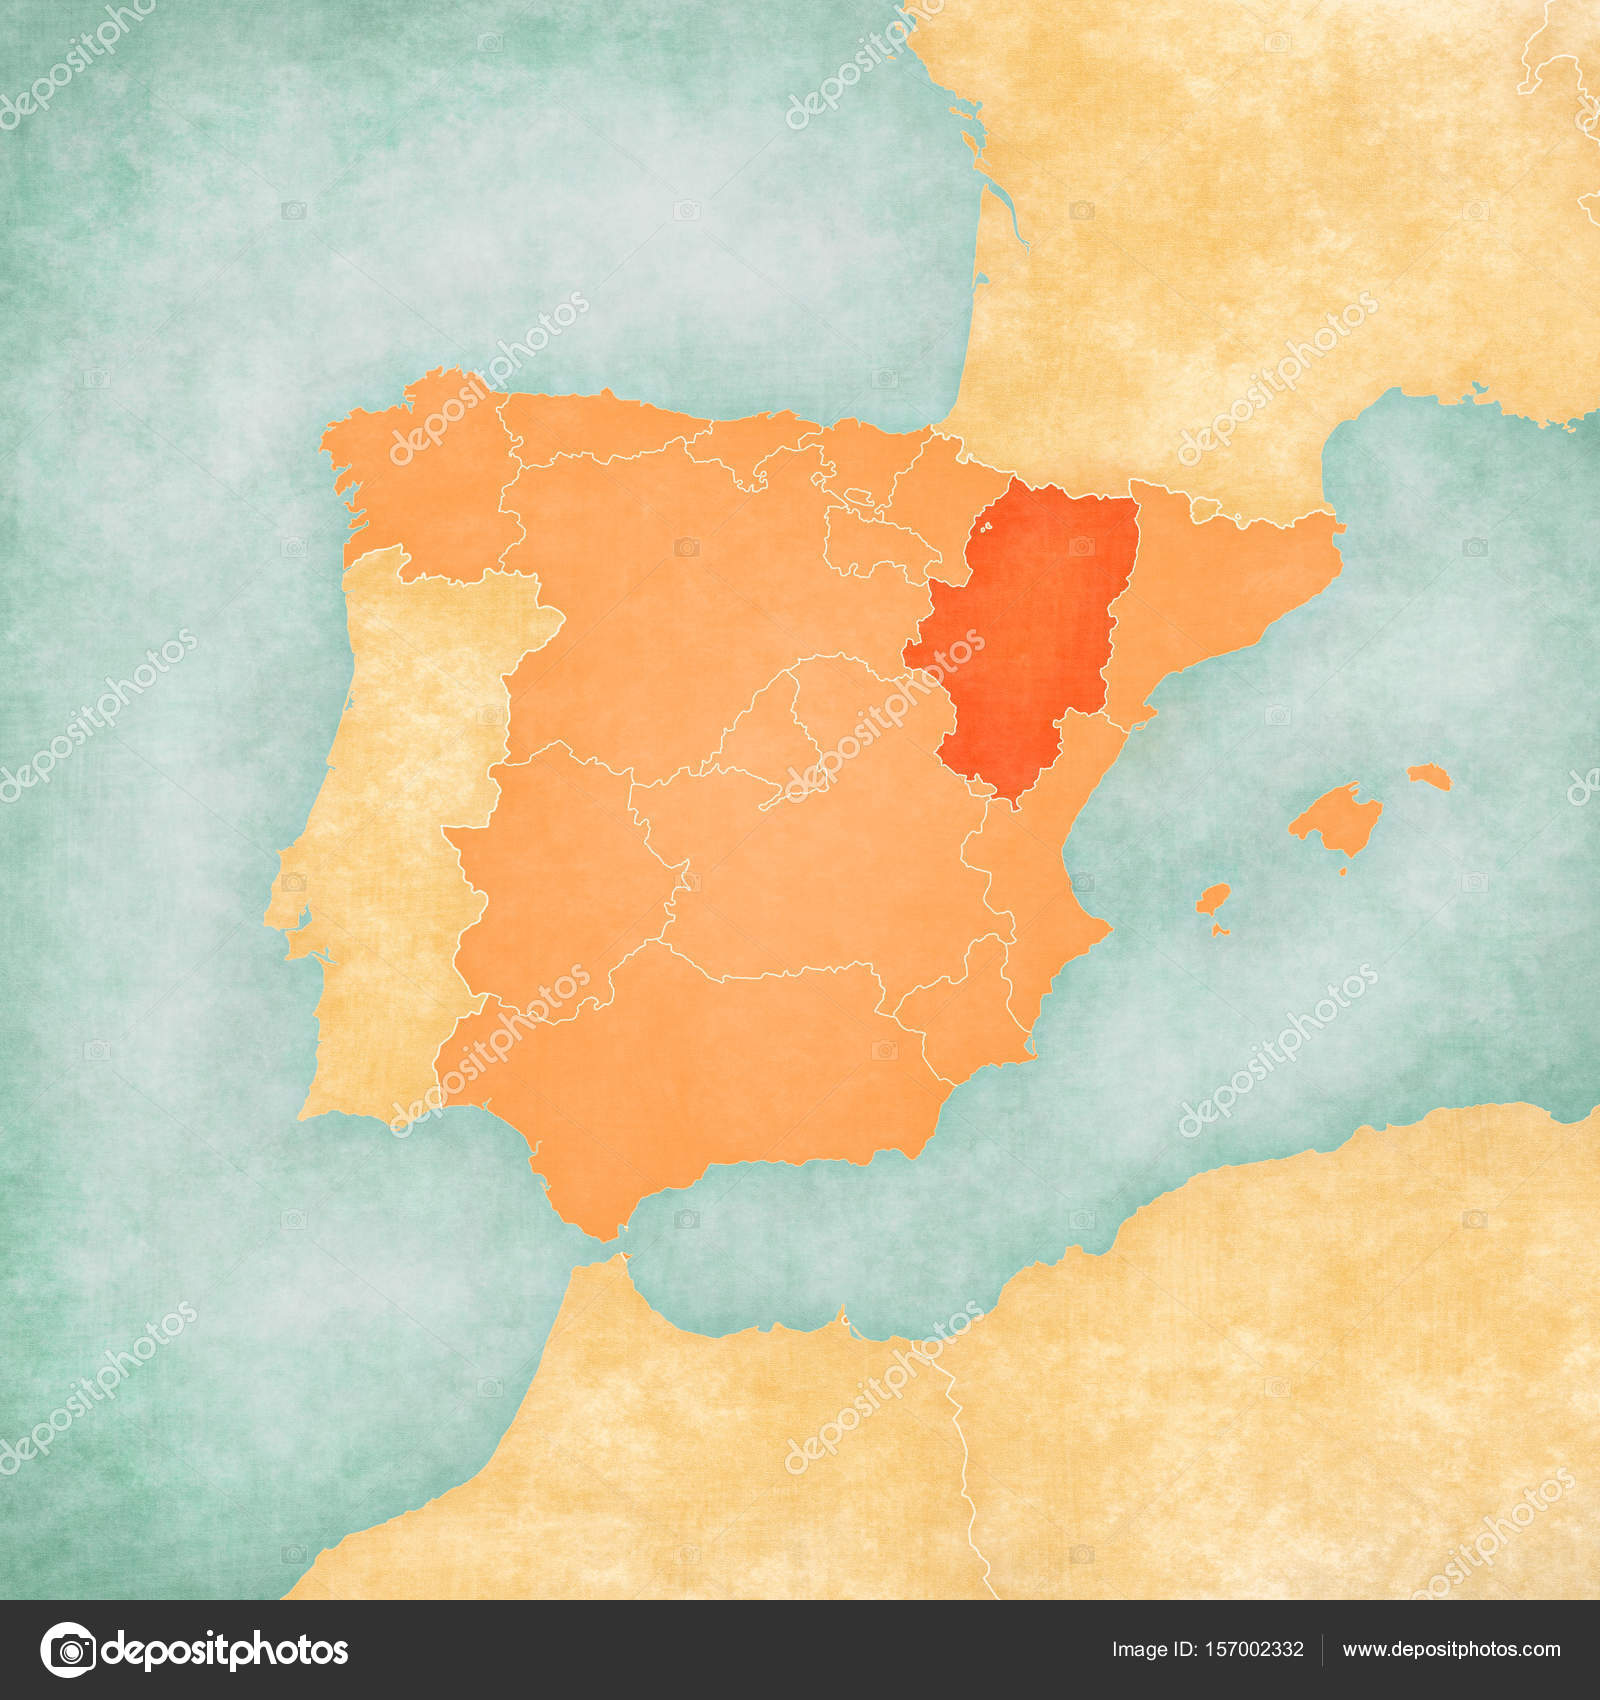 Map Of Iberian Peninsula Aragon Stock Photo C Tindo 157002332